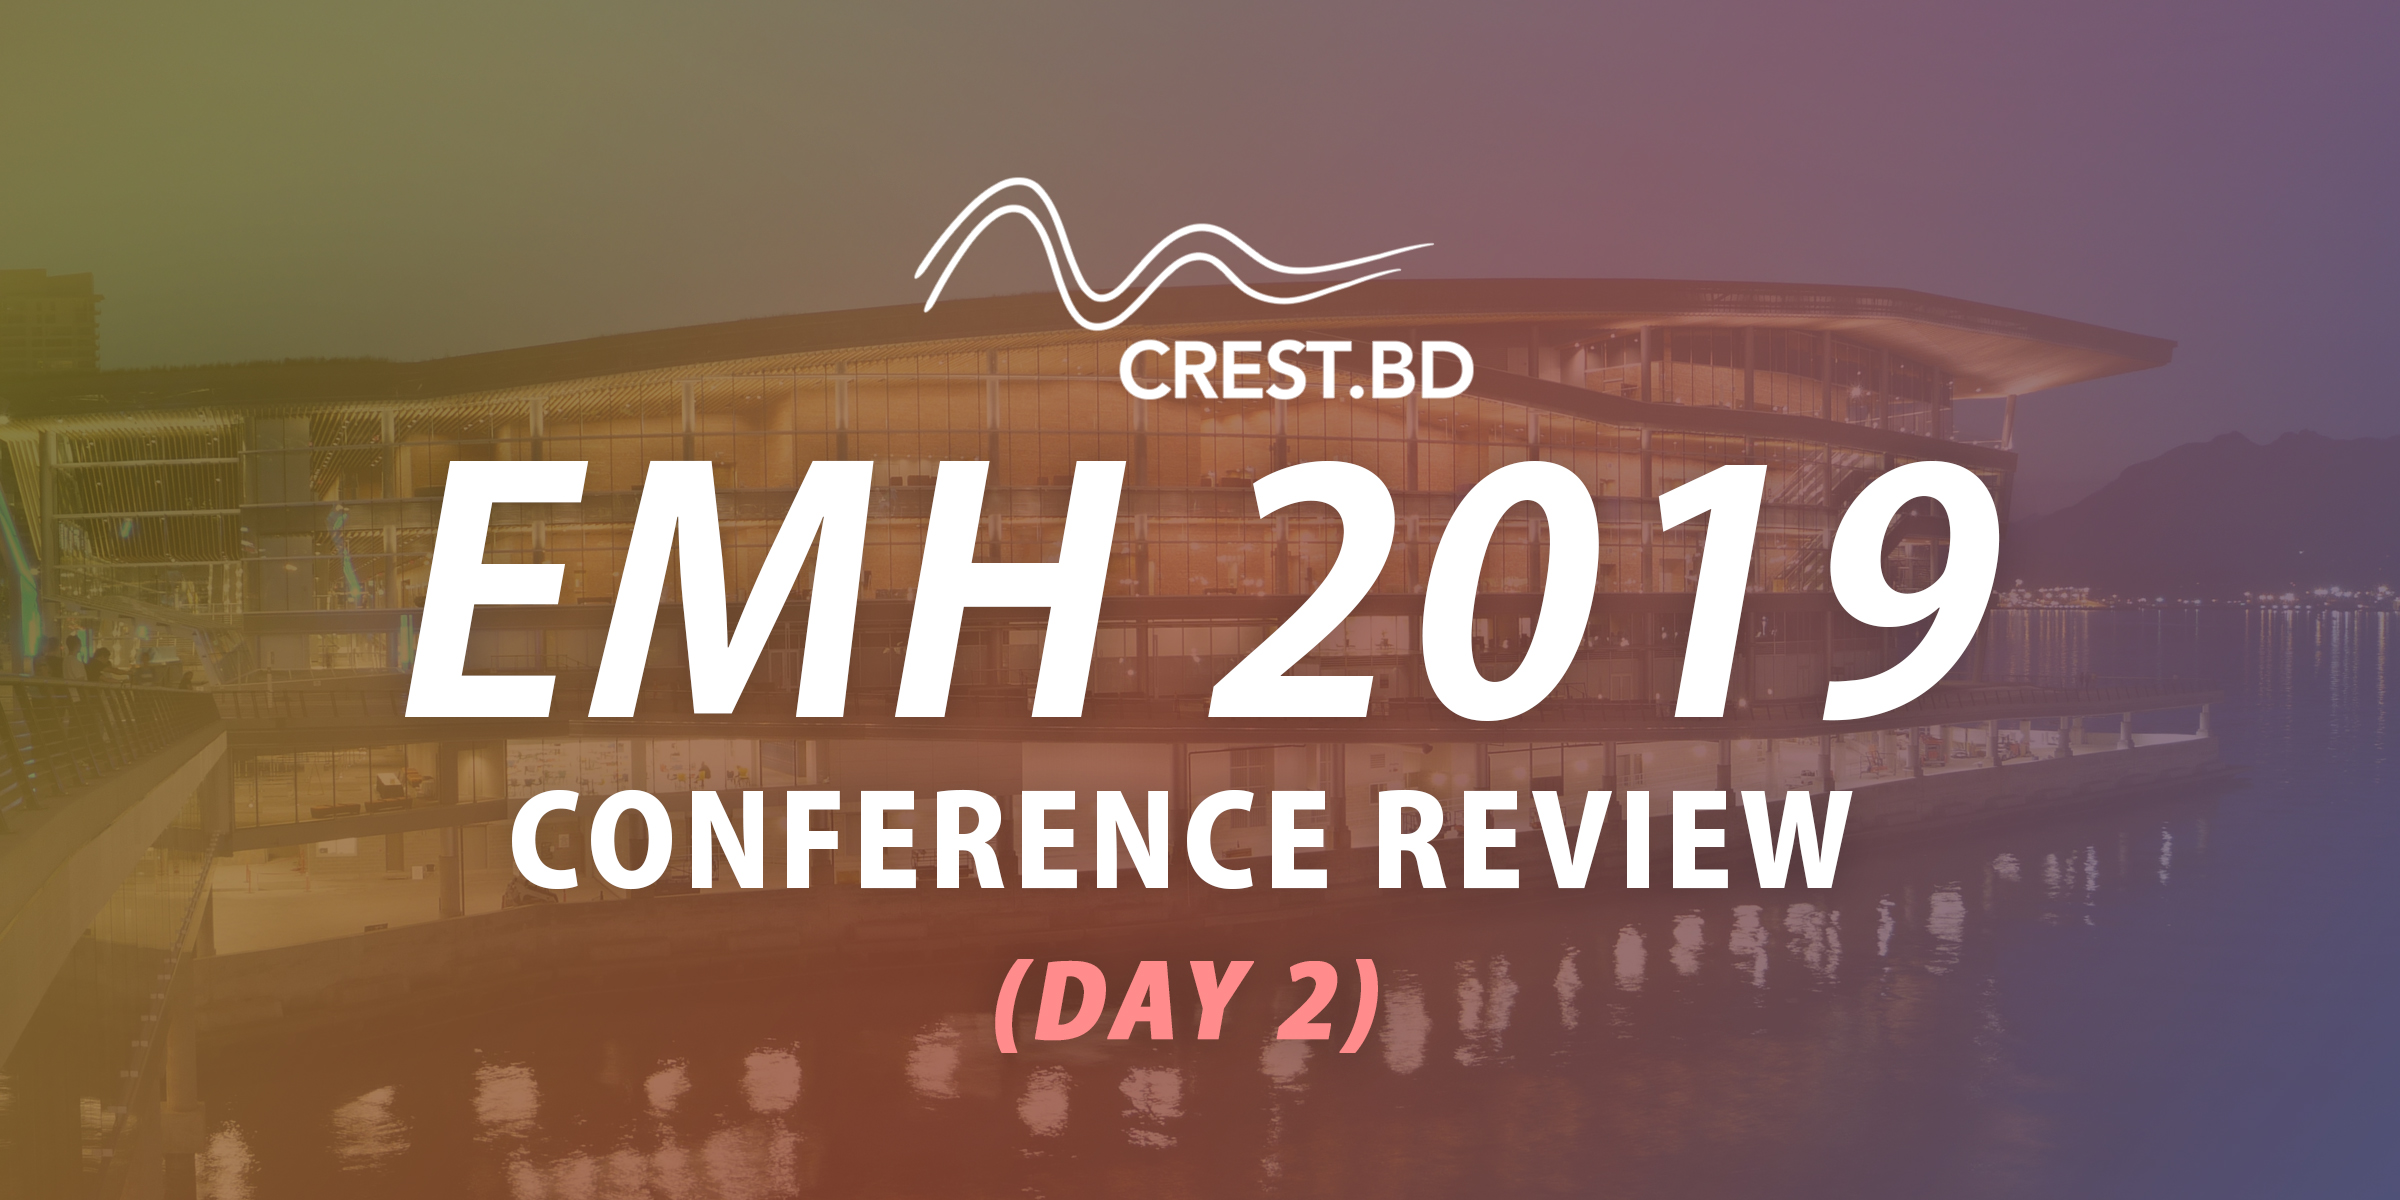 CREST.BD: E-Mental Health Conference Review 2019 (Day 2)